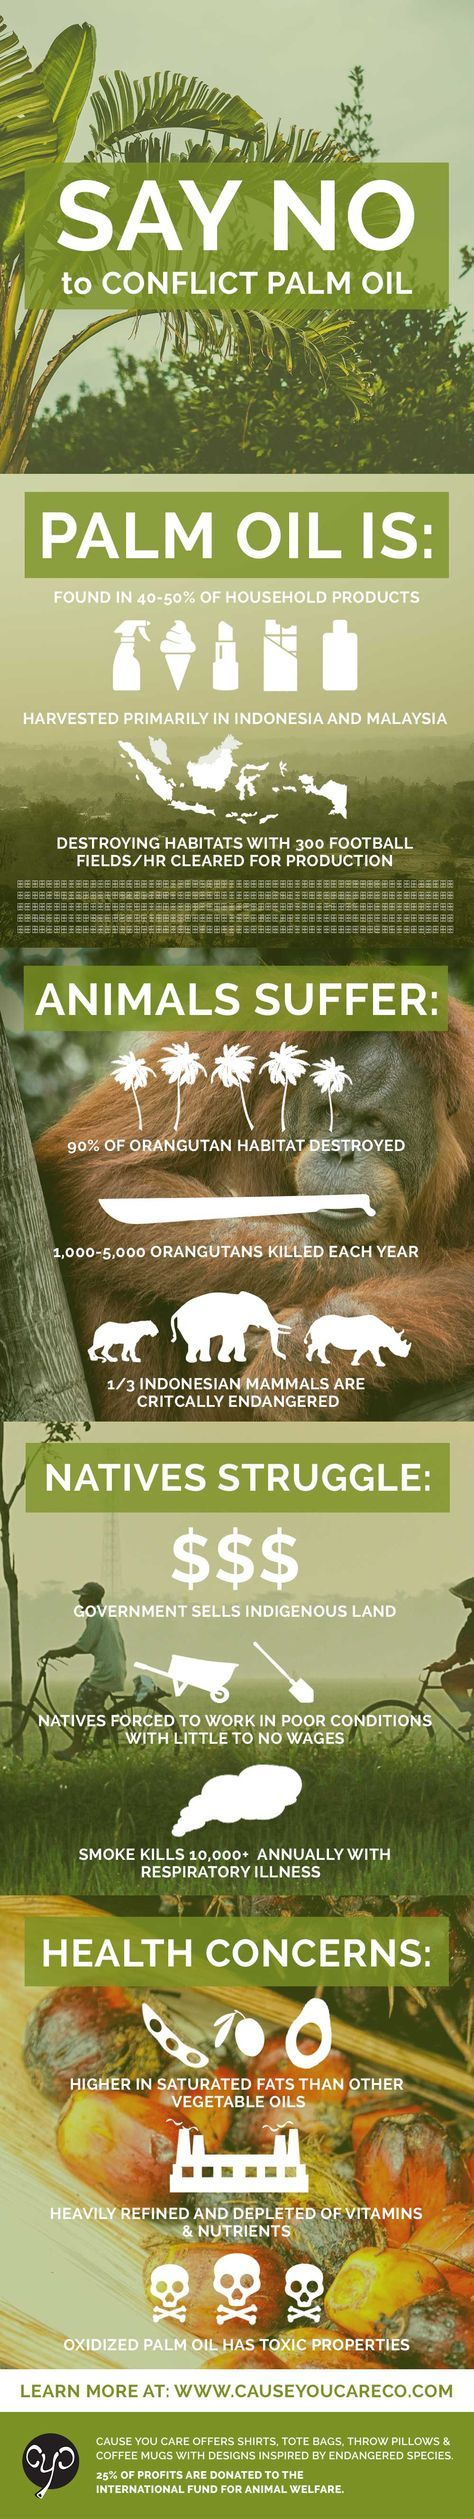 Did you know palm oil is responsible for severe habitat destruction, climate change, animal cruelty and indigenous rights abuses? Here's how to avoid it! www.causeyoucareco.com #palmoil